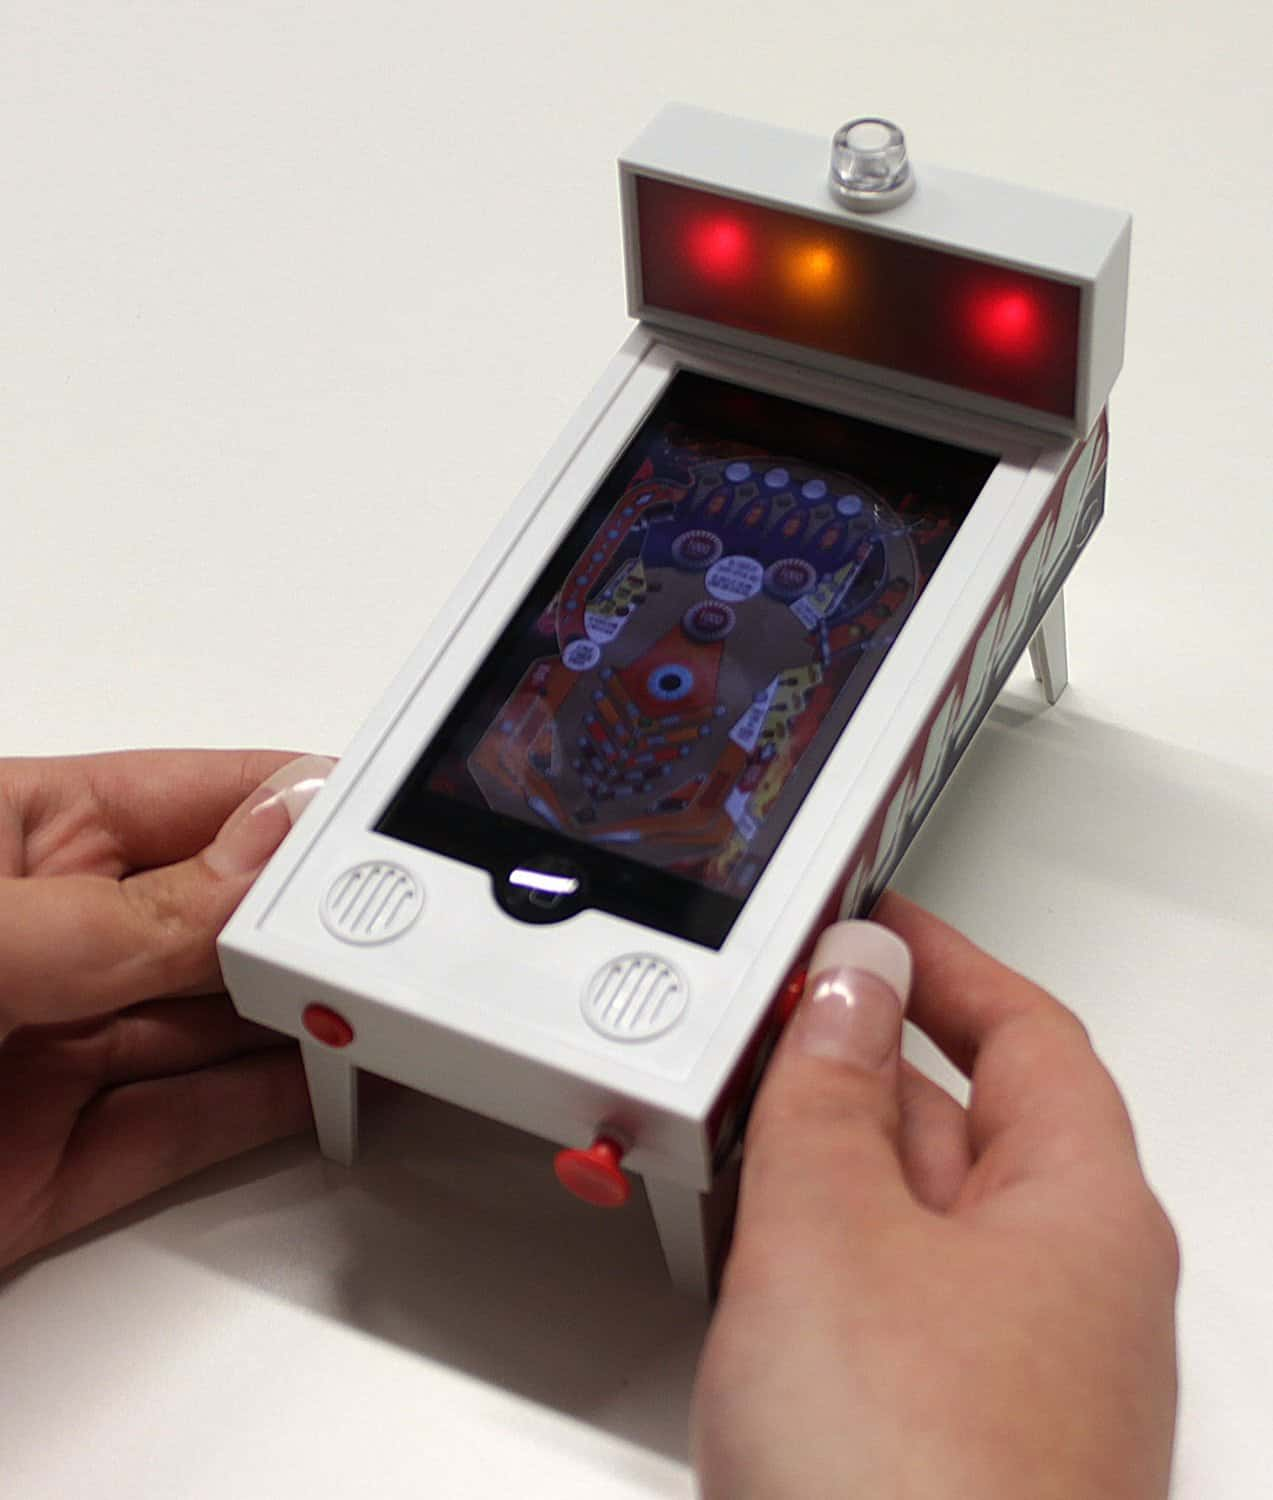 New Potato Technologies Pinball Magic for iPhone Play with Real Flippers